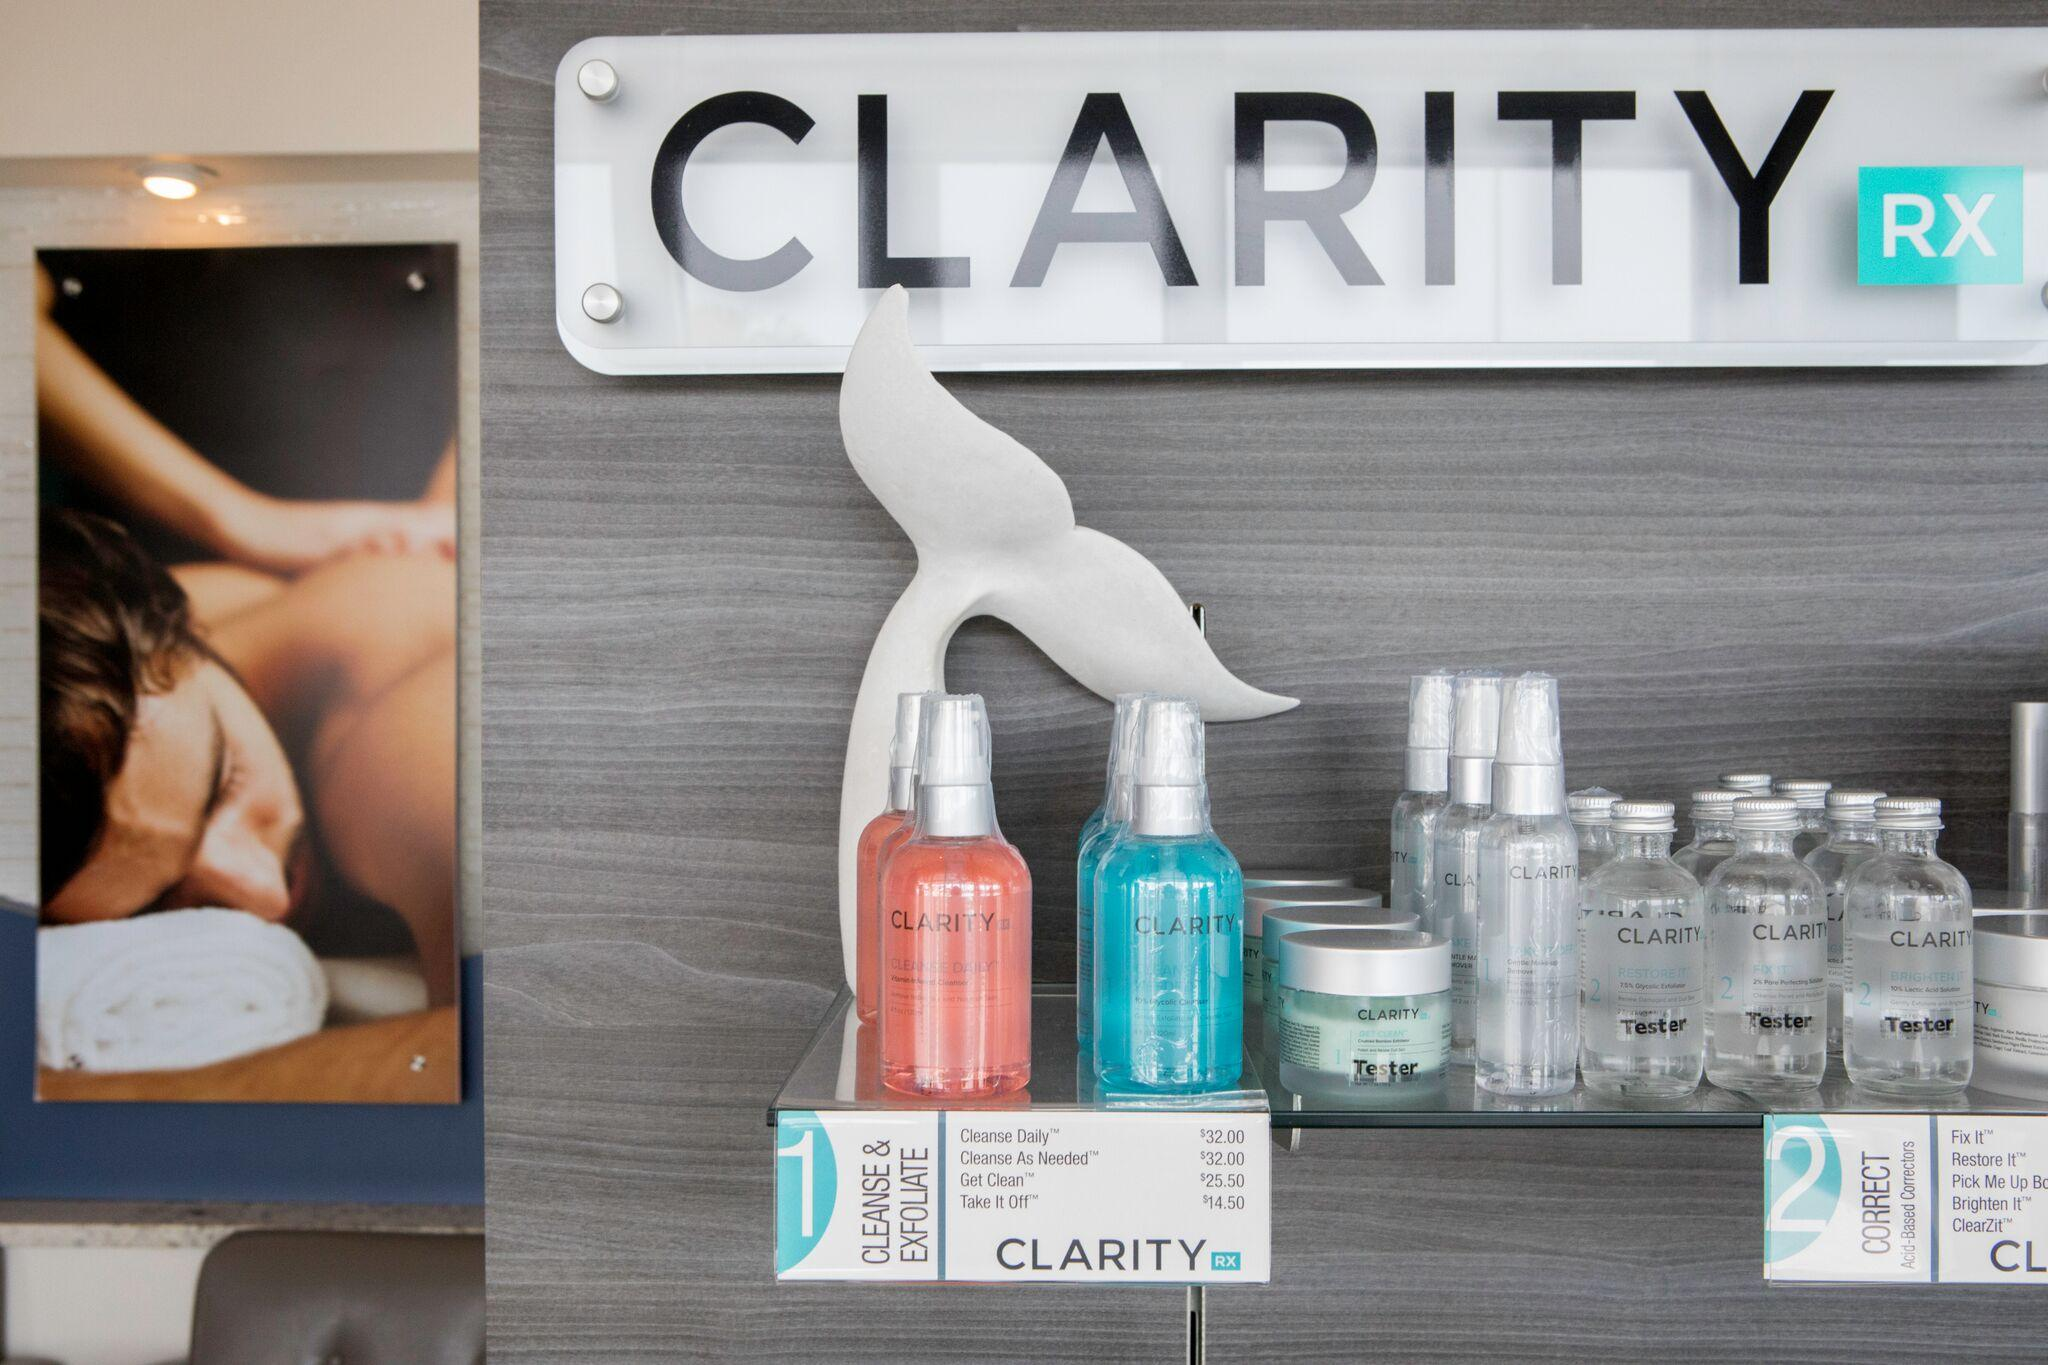 Clarity Product Display